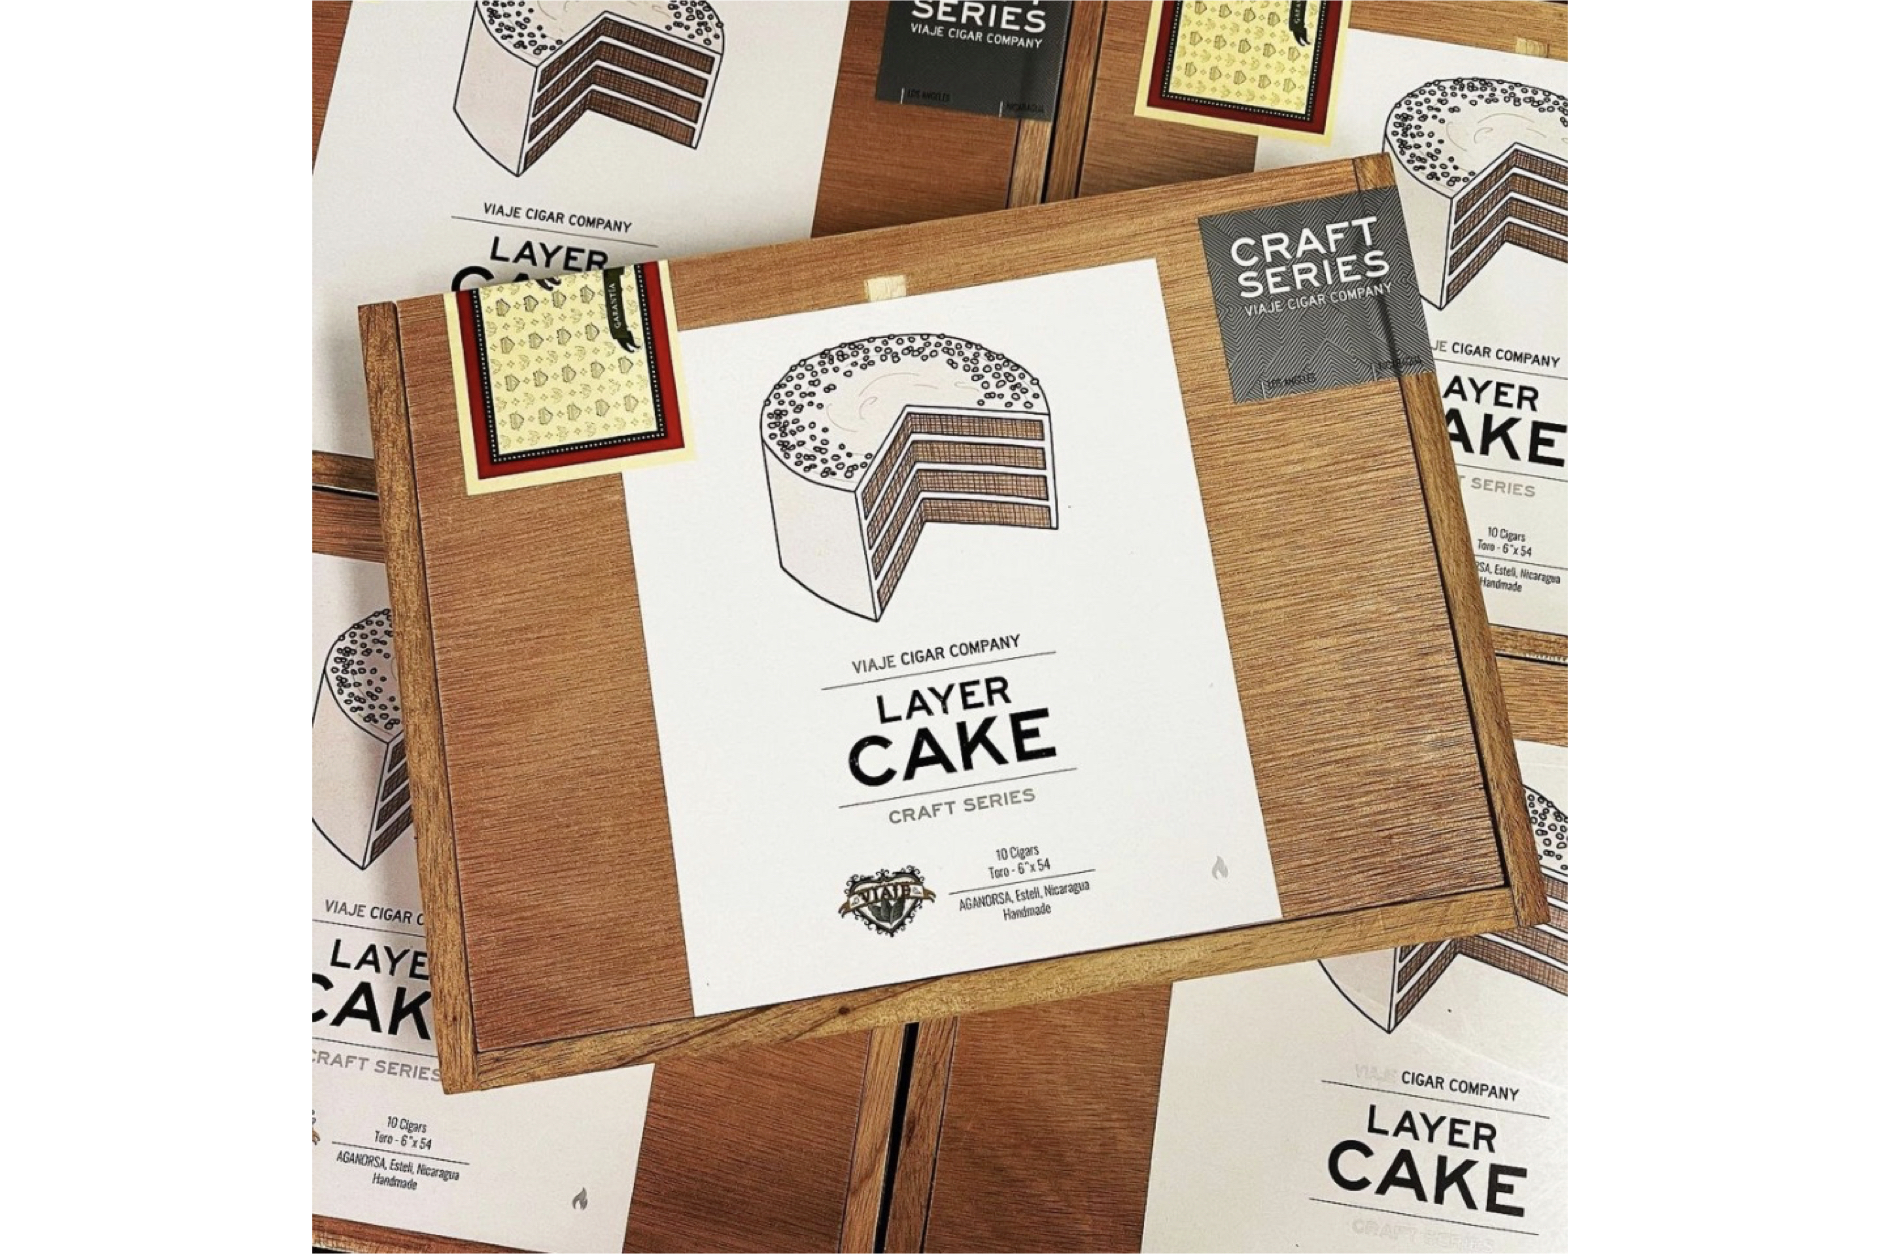 Viaje Layer Cake Arrives at Stores